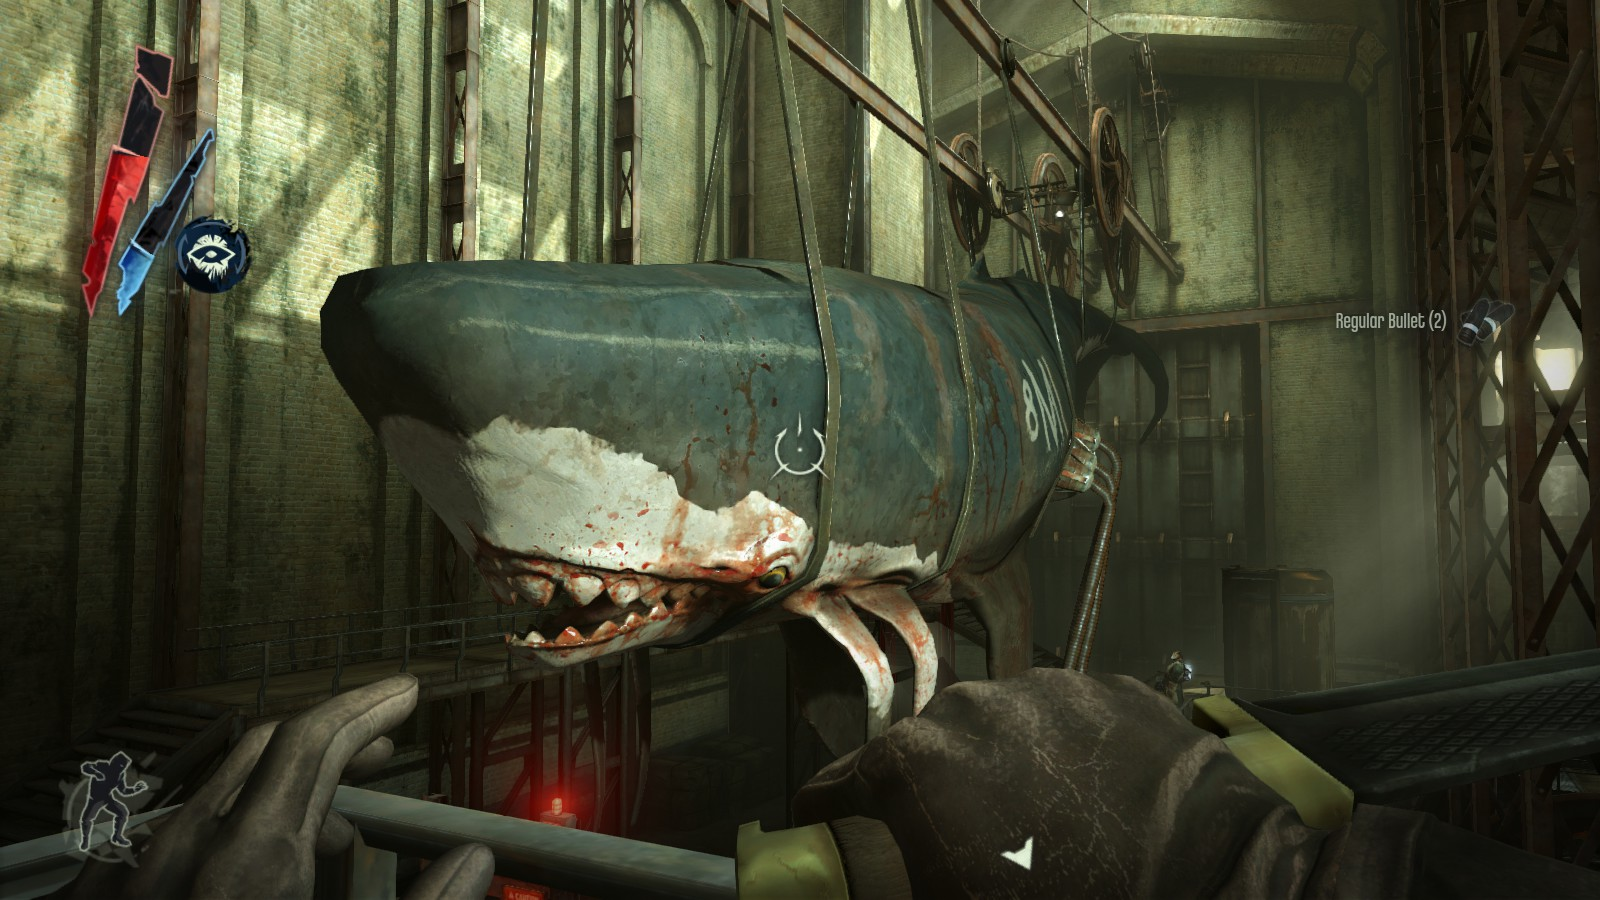 Grab the whale's eye to complete the recipe - Dishonored The Knife of Dunwall DLC